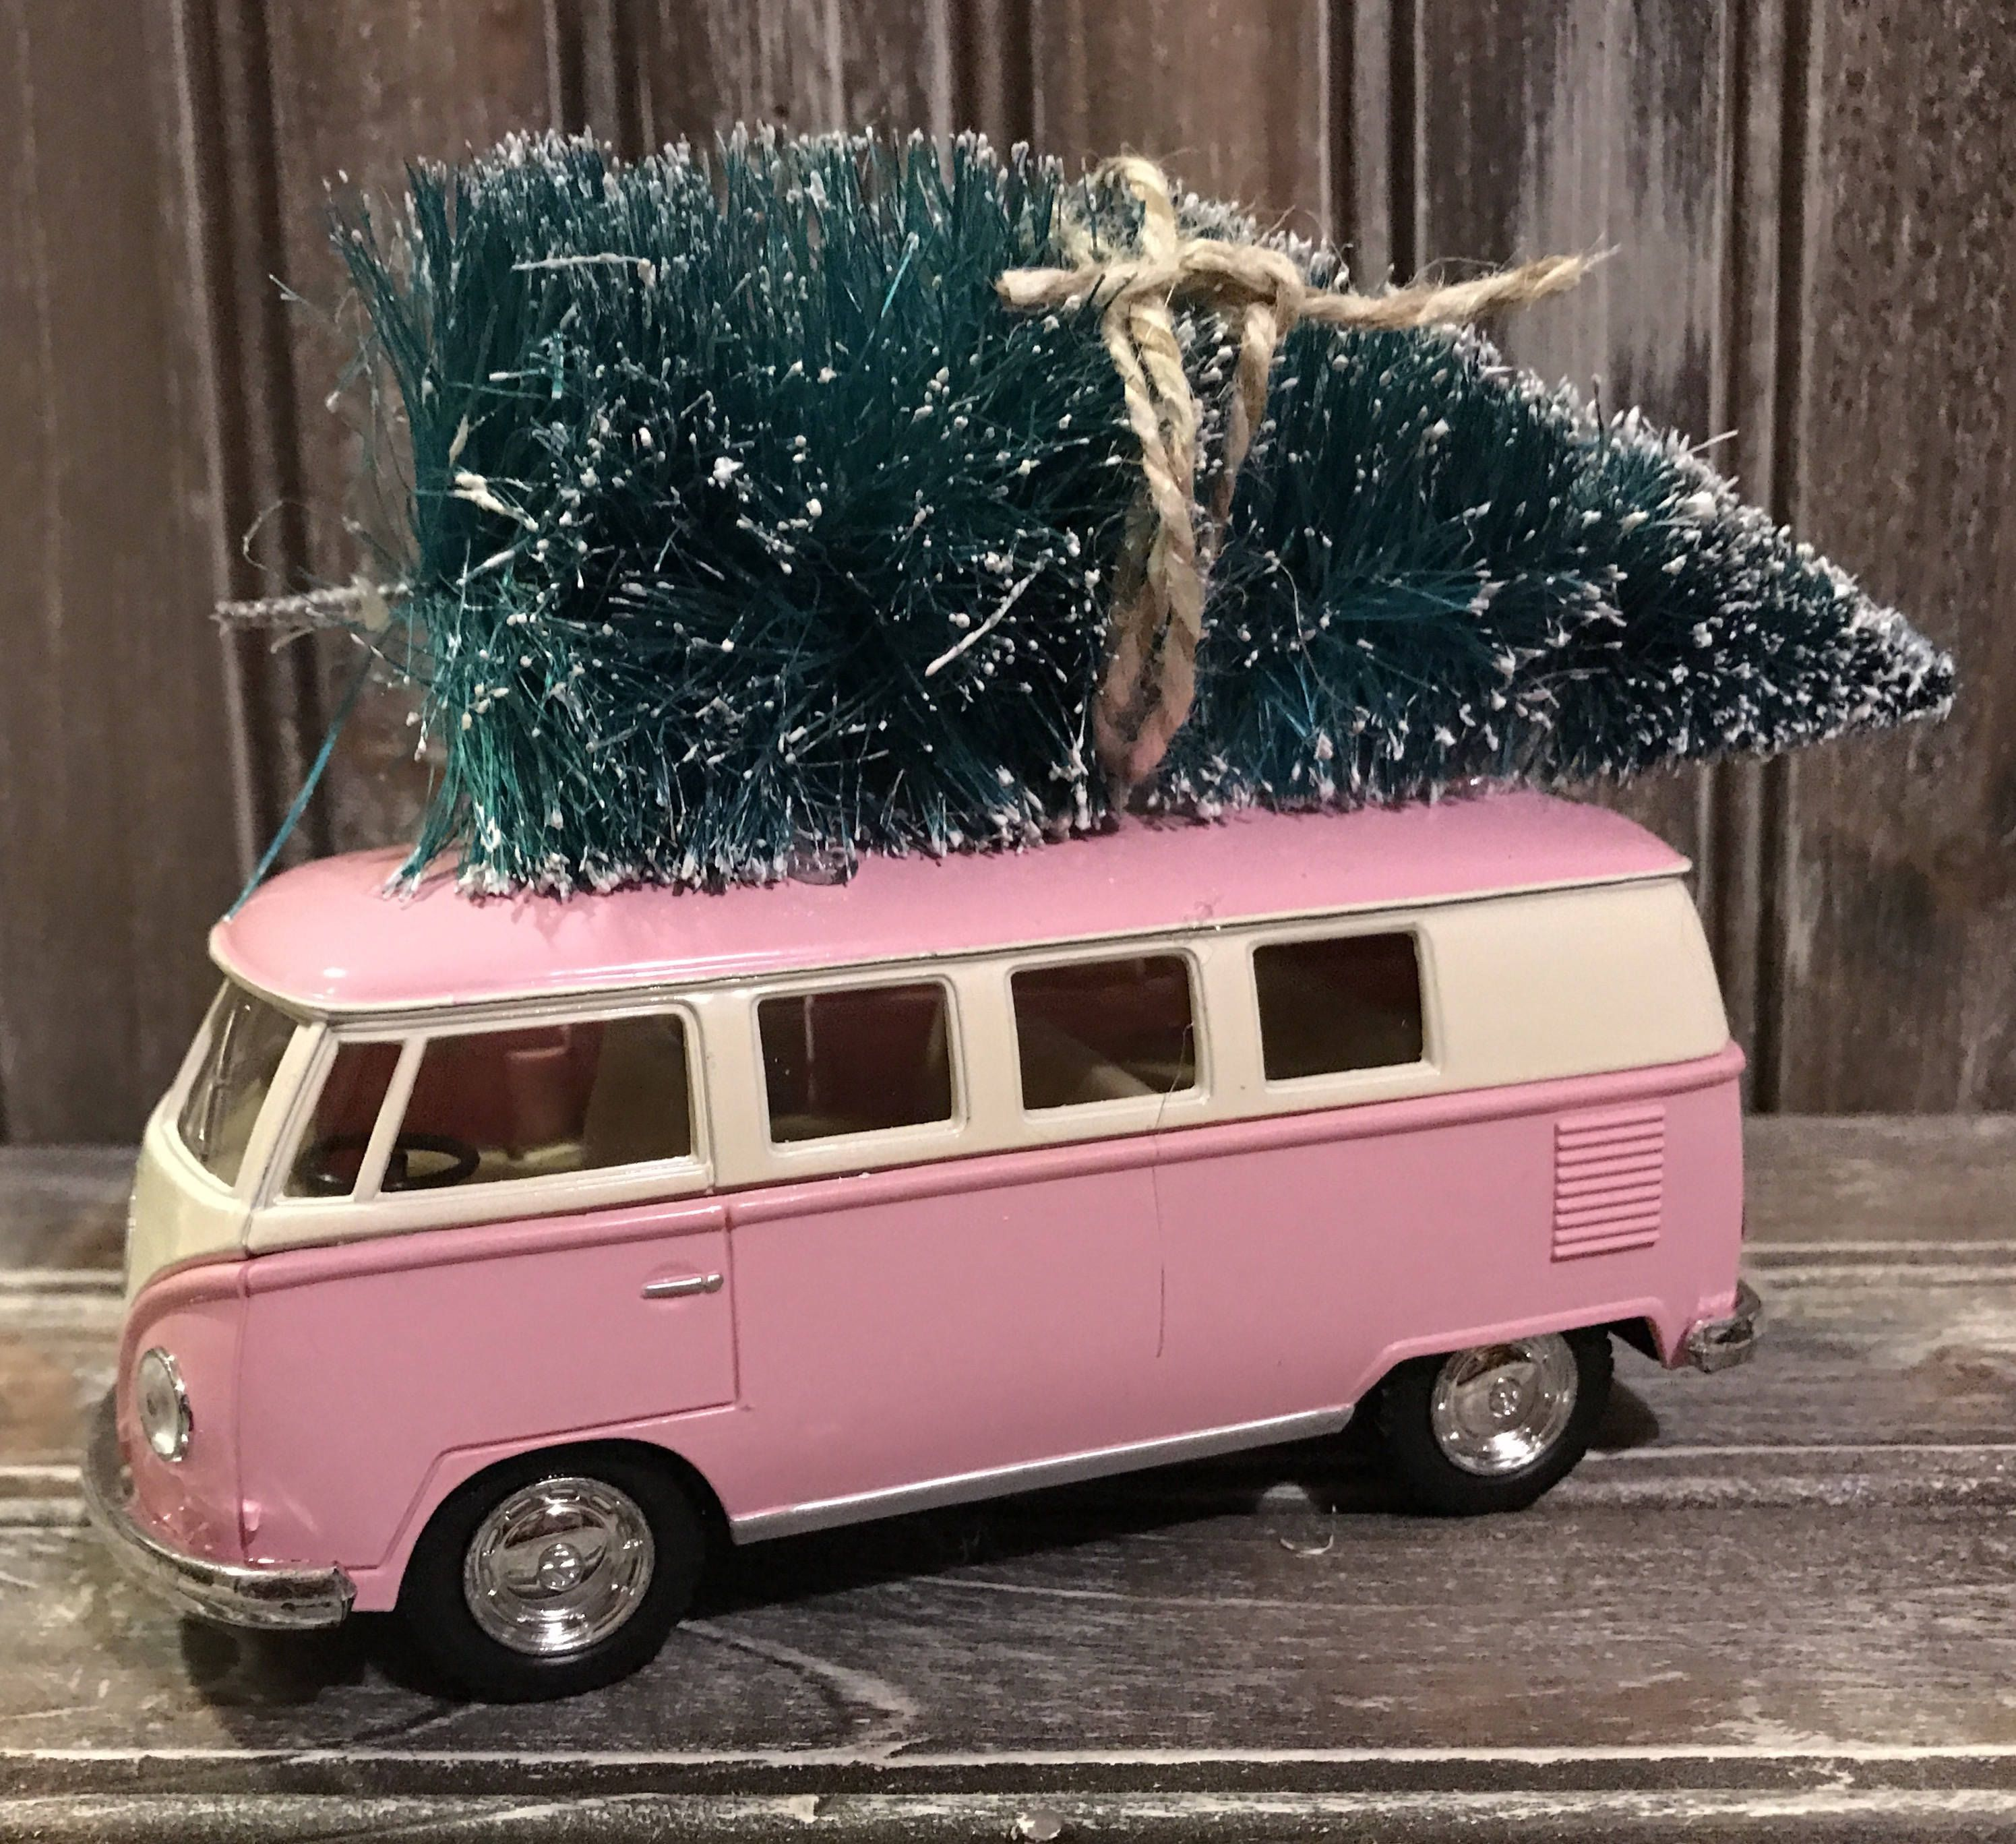 Cast Vw Camper With Christmas Tree Bus Decor